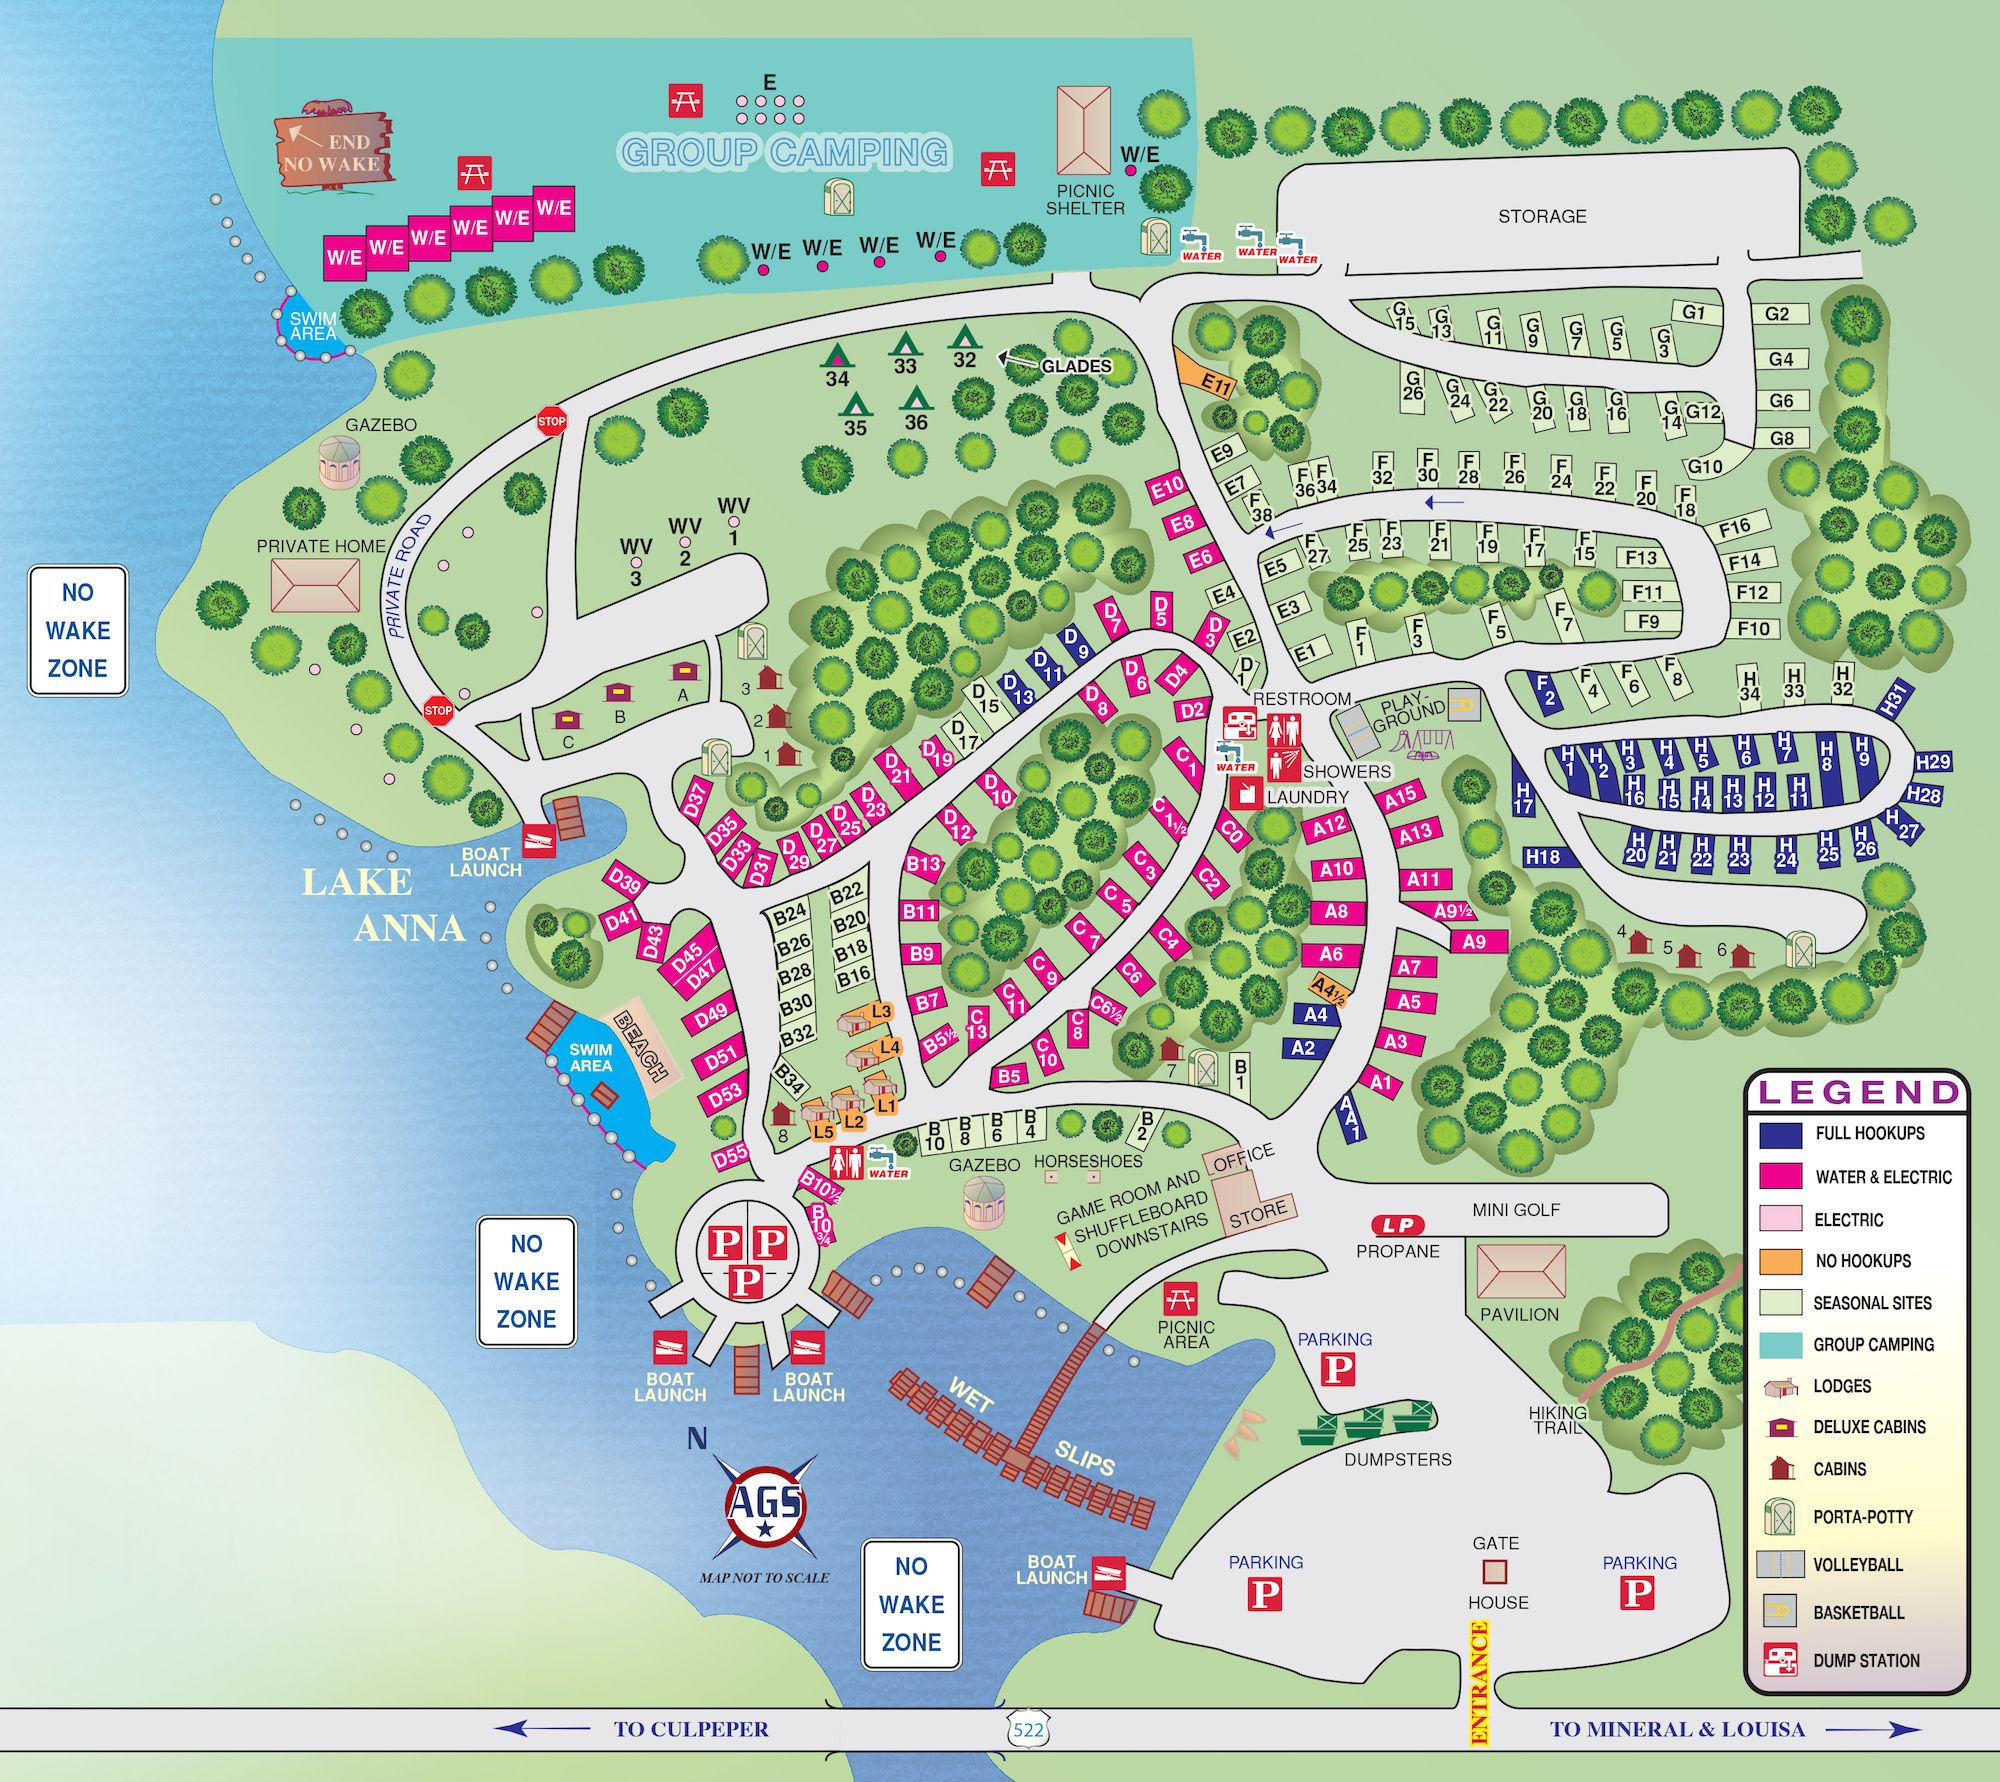 Christopher Run Campground Campground Maps Amp Directions Lake Anna Virginia Camping Arts N